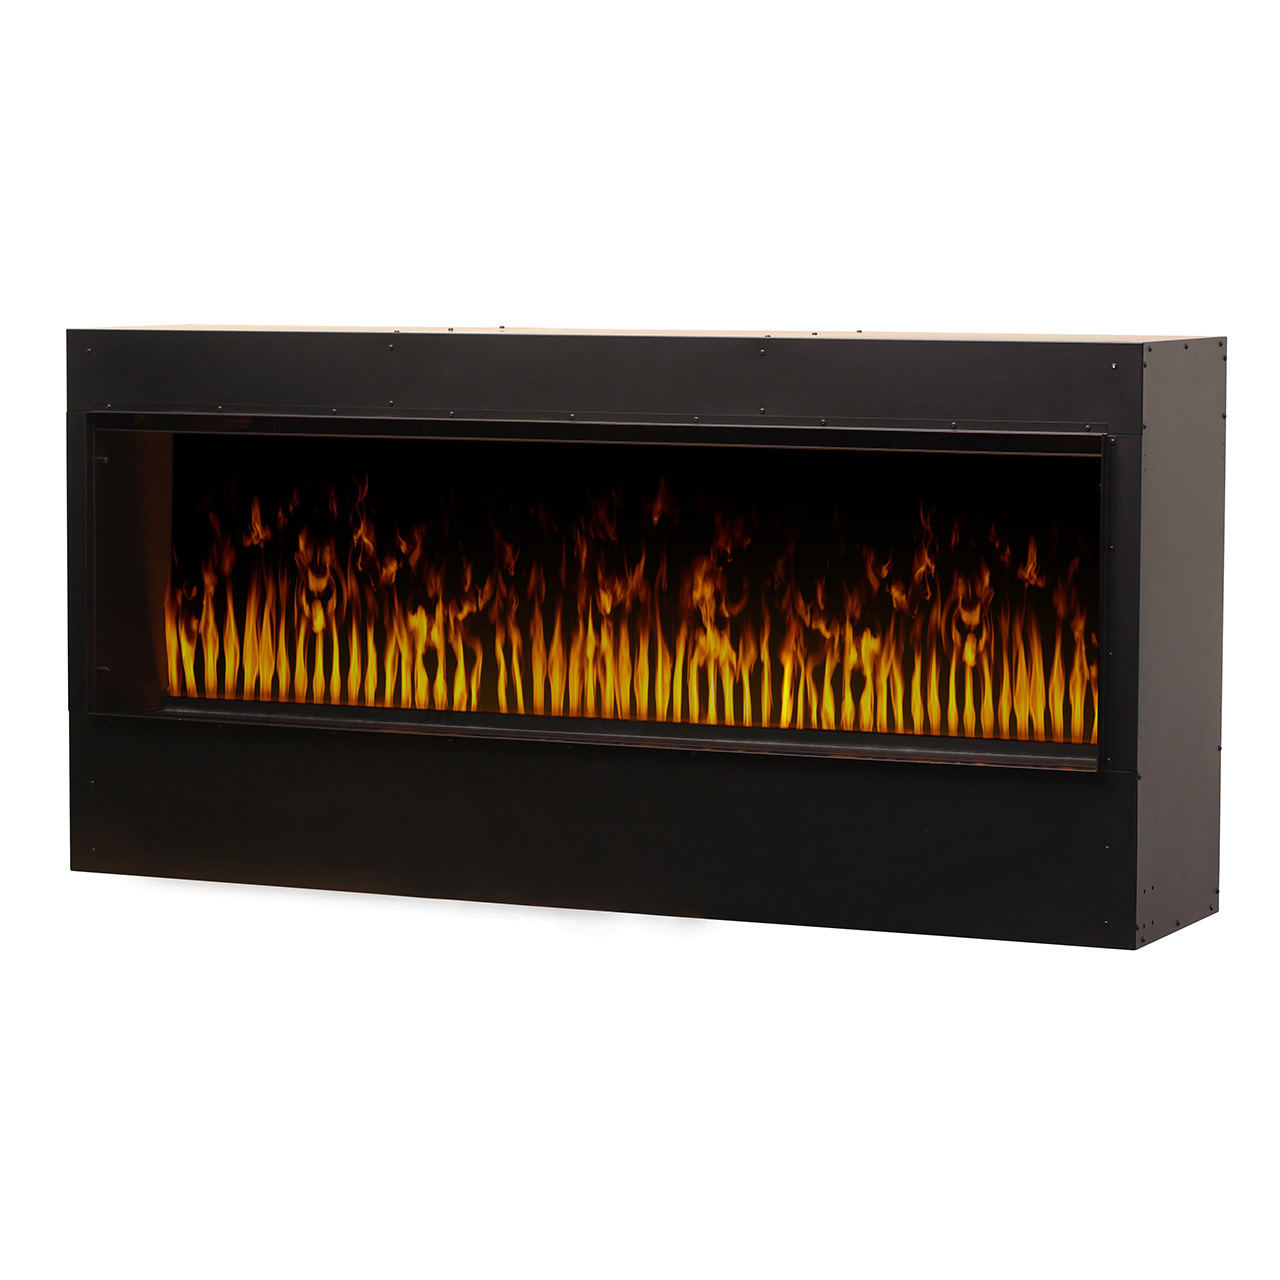 Top 5 Reasons to Add an Electric Fireplace to Your Home